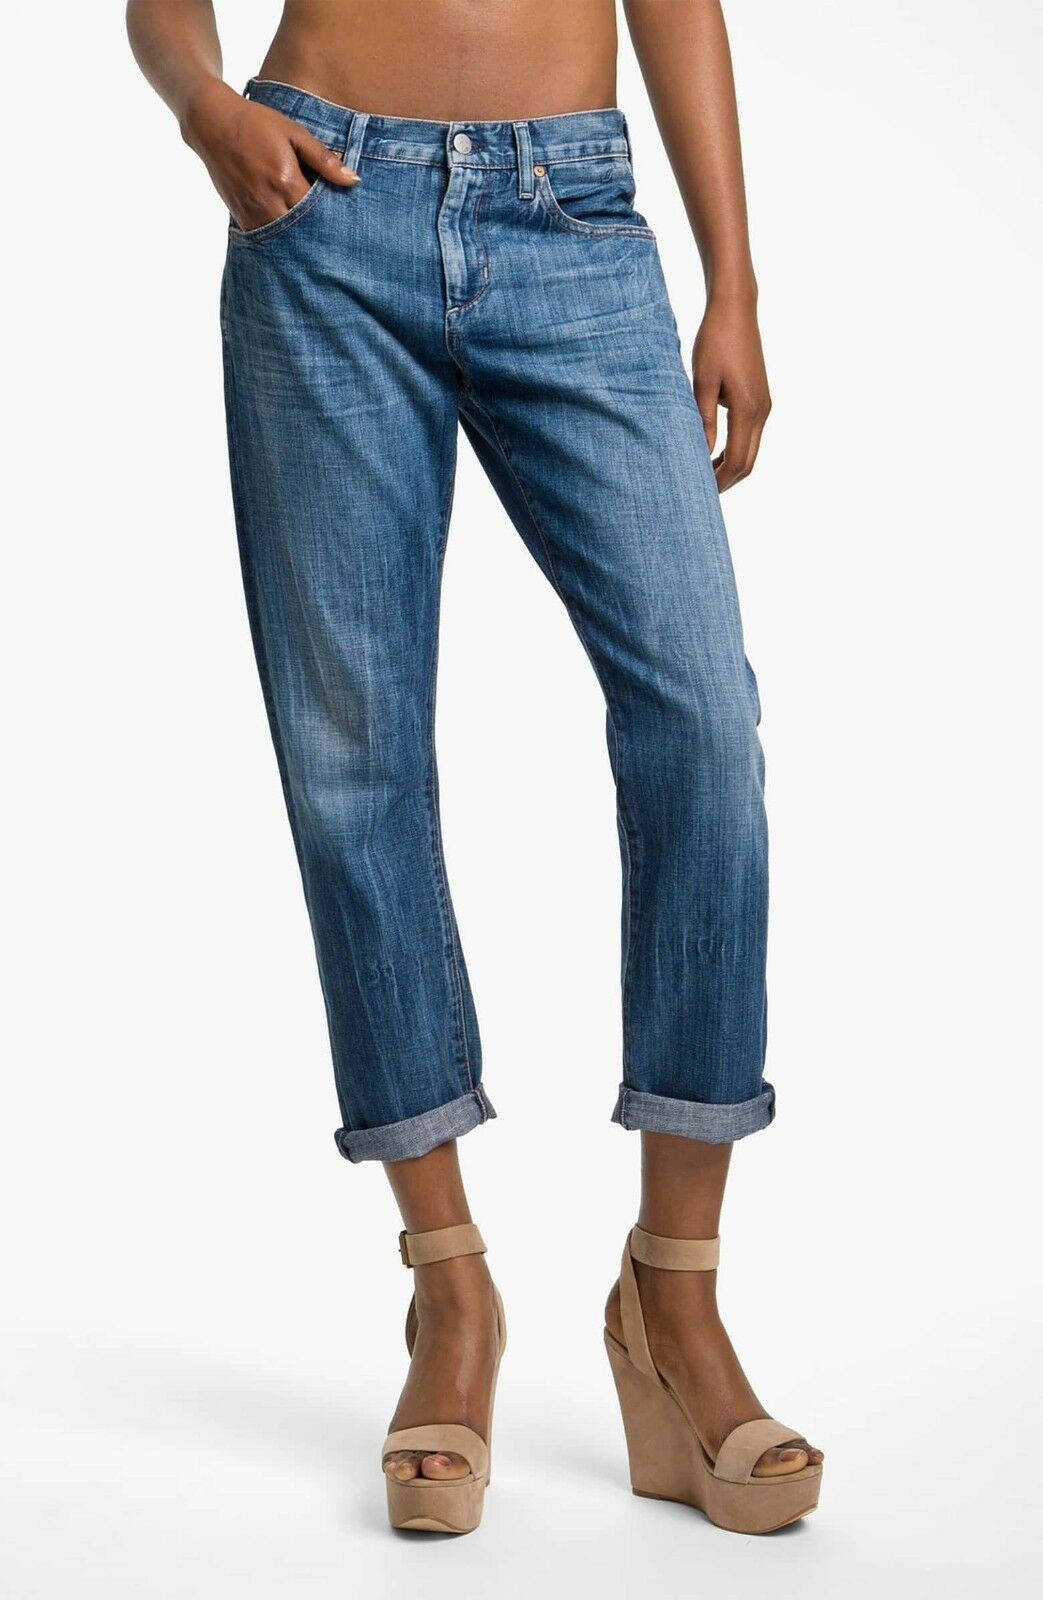 NWT  Citizens of Humanity Daisy' Crop Loose Fit Jeans [ SZ 25 ]  E337